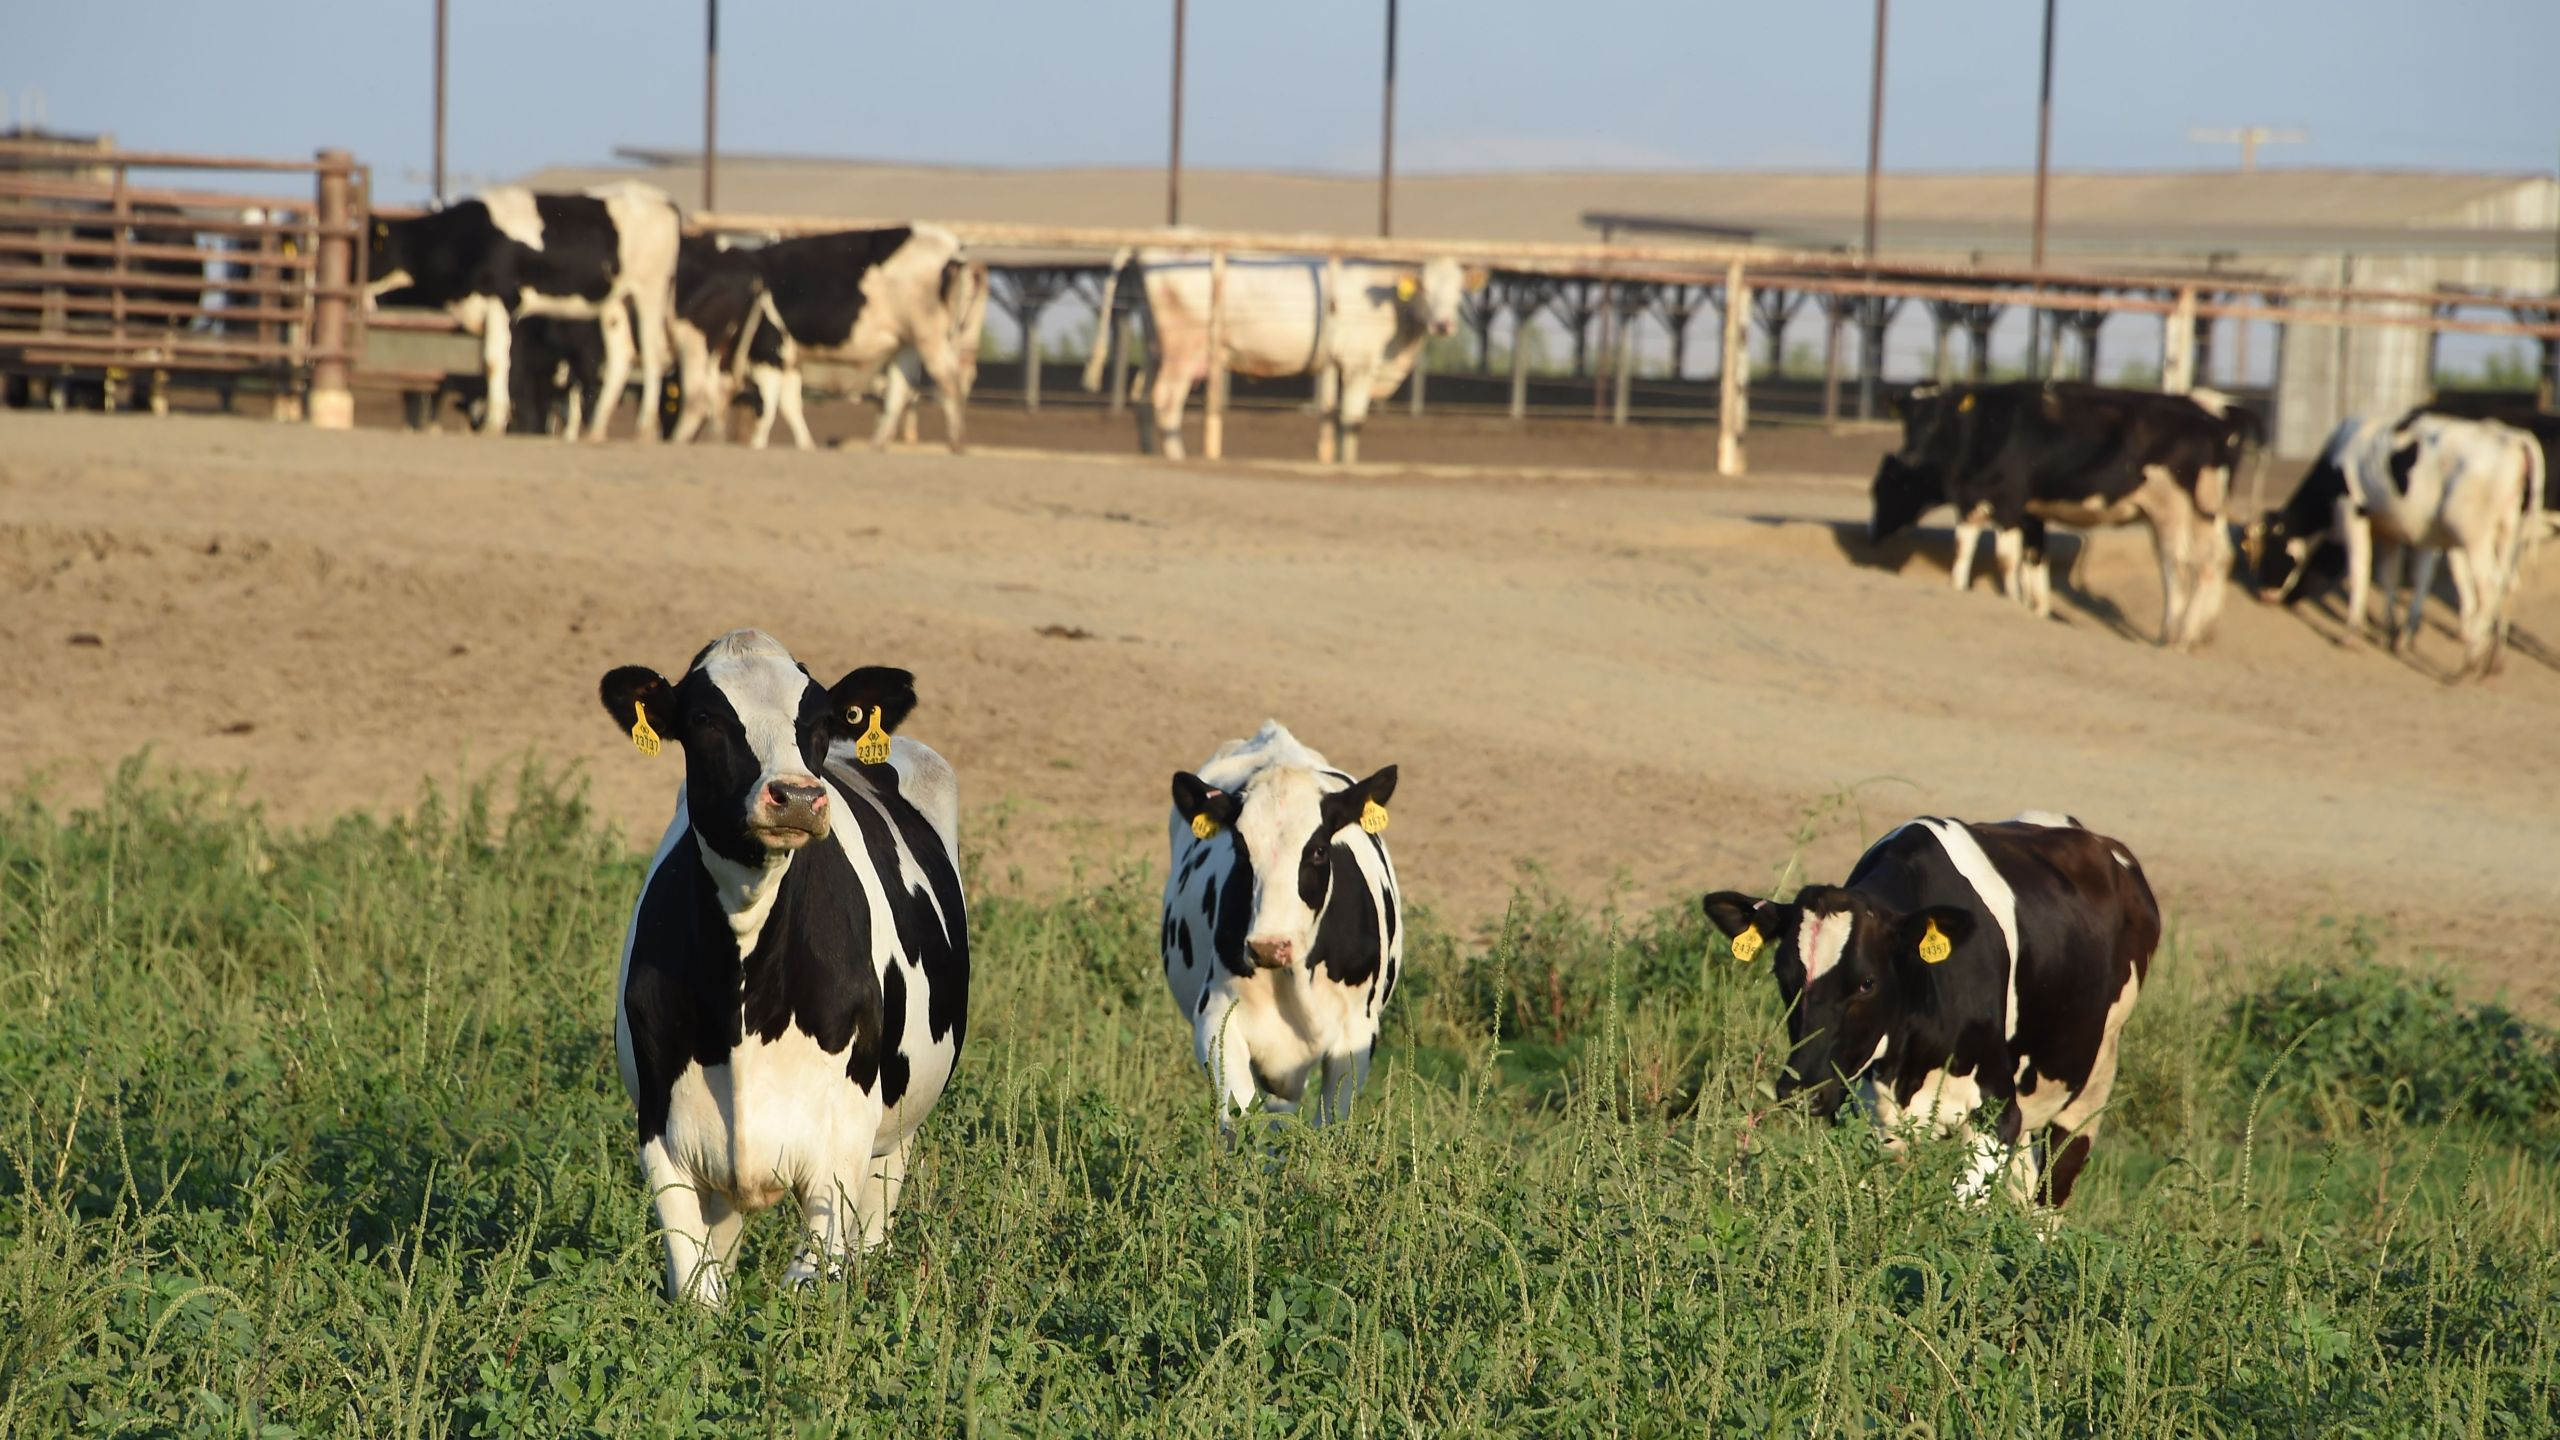 Cows graze at a dairy farm on August 24, 2016, in Porterville in California's Central Valley. (Robyn Beck/AFP via Getty Images)